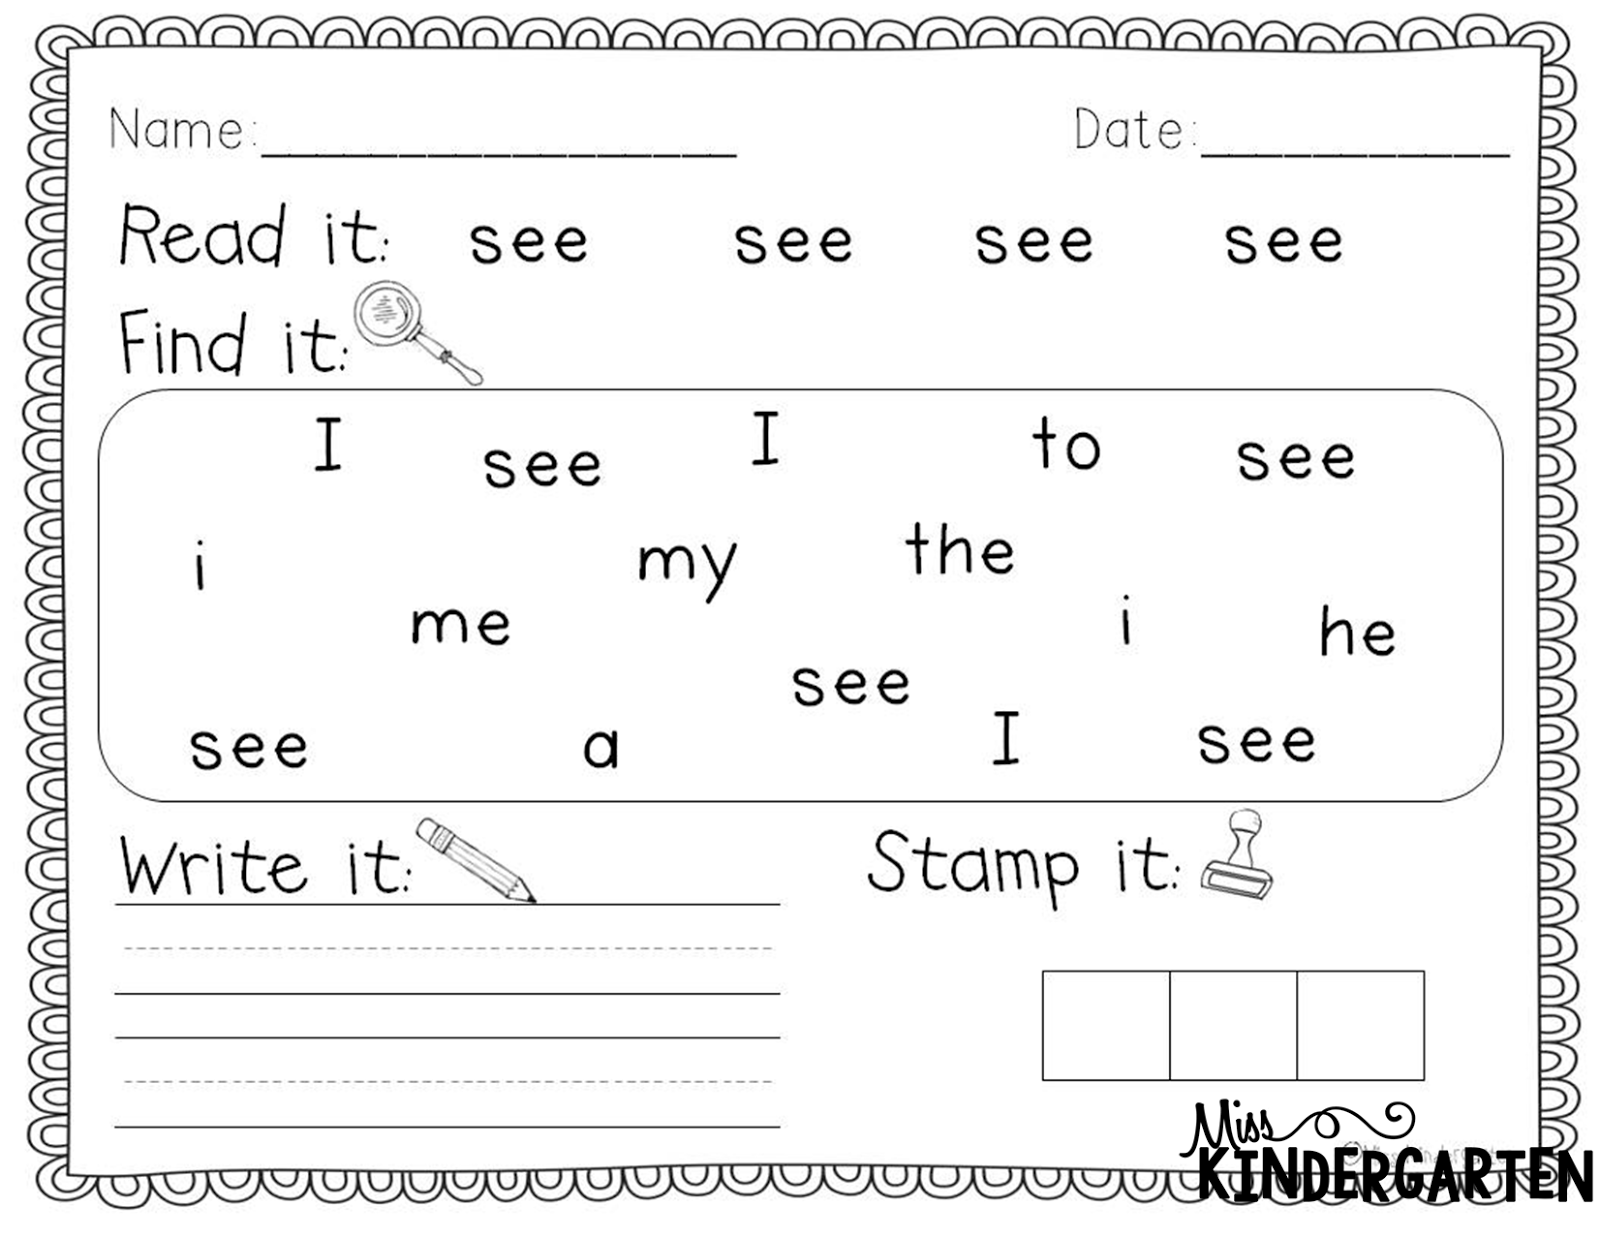 Worksheet Sight Word For Kindergarten sight word practice miss kindergarten httpwww teacherspayteachers comproductsight word